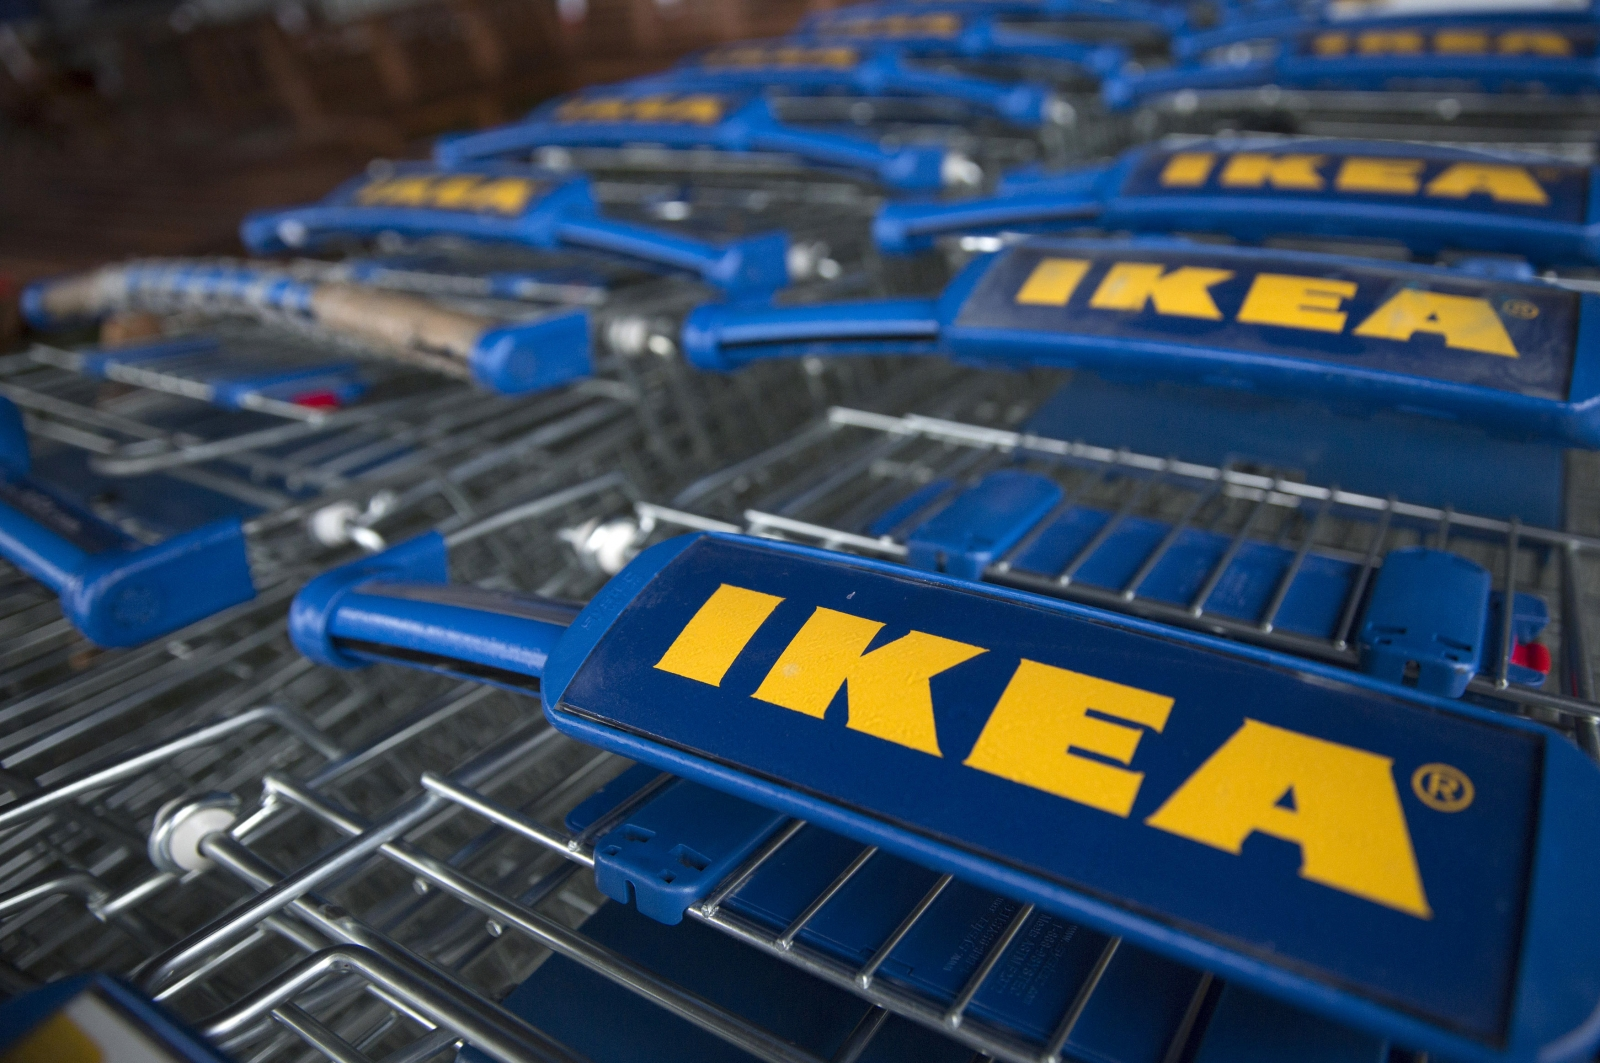 Ikea to recall about 1.7 million chests and dressers in China amid concerns it could be dangerous to children